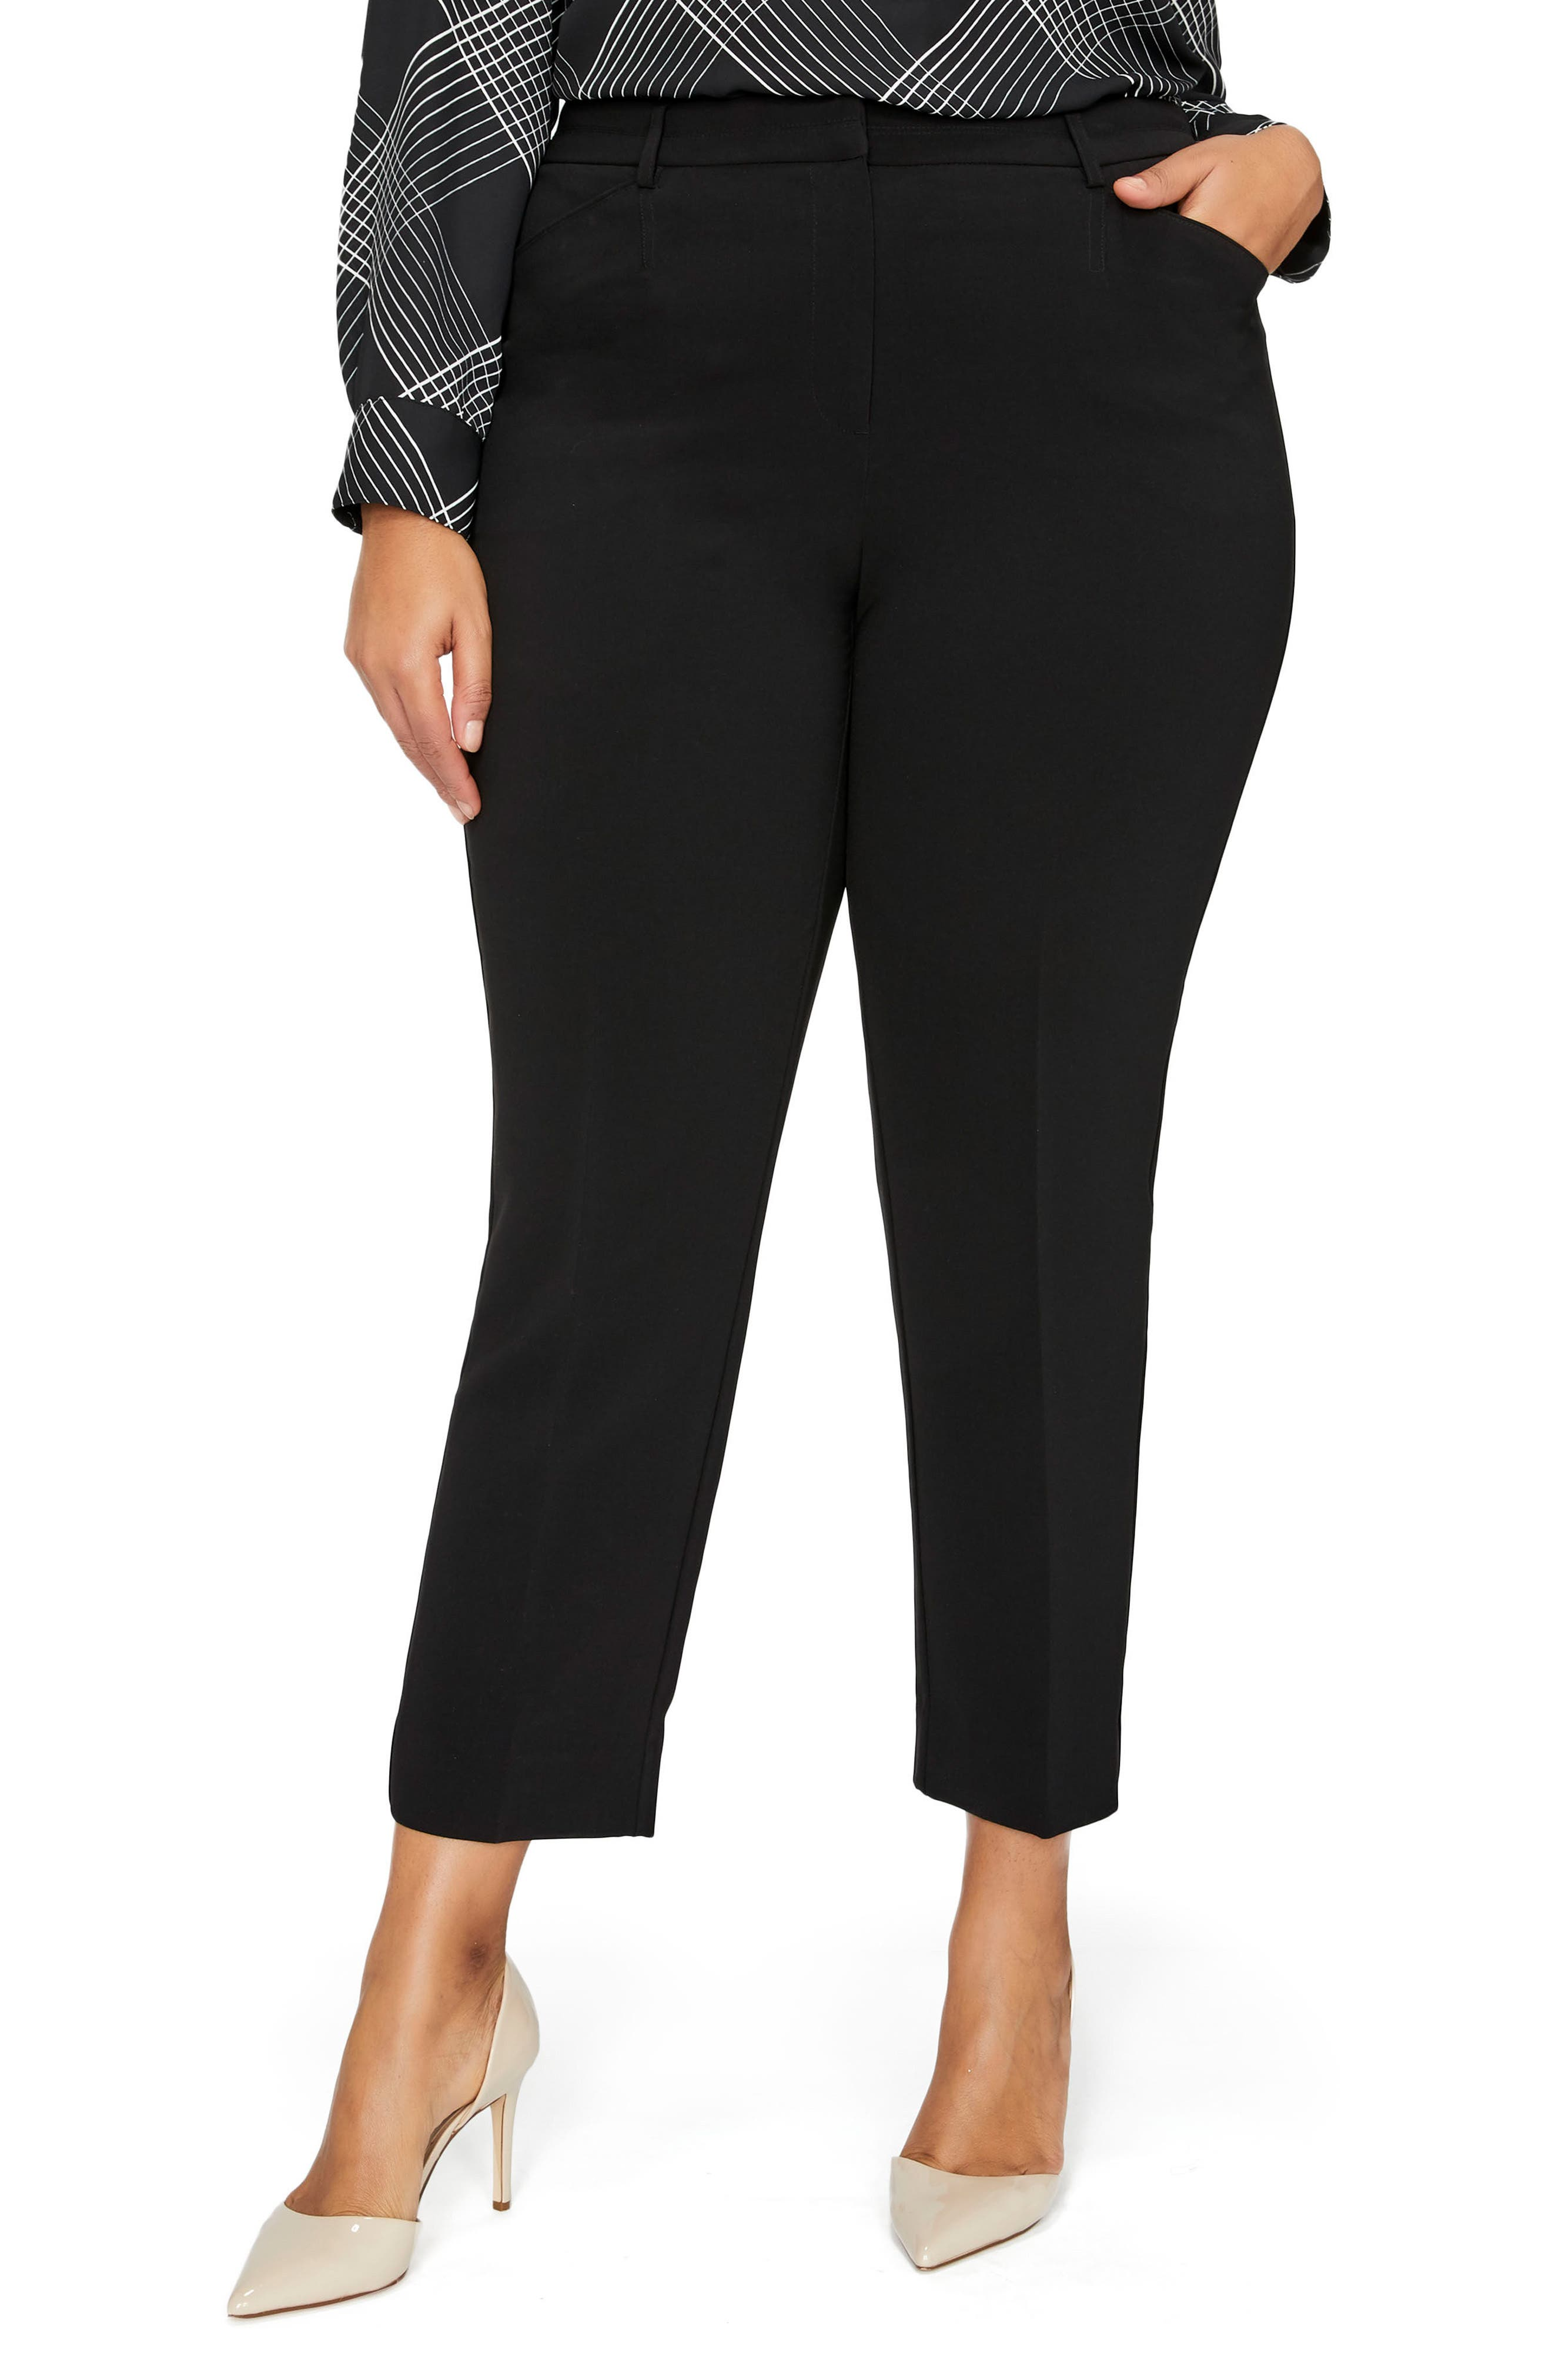 MICHEL STUDIO High Waist Ankle Pants (Plus Size)